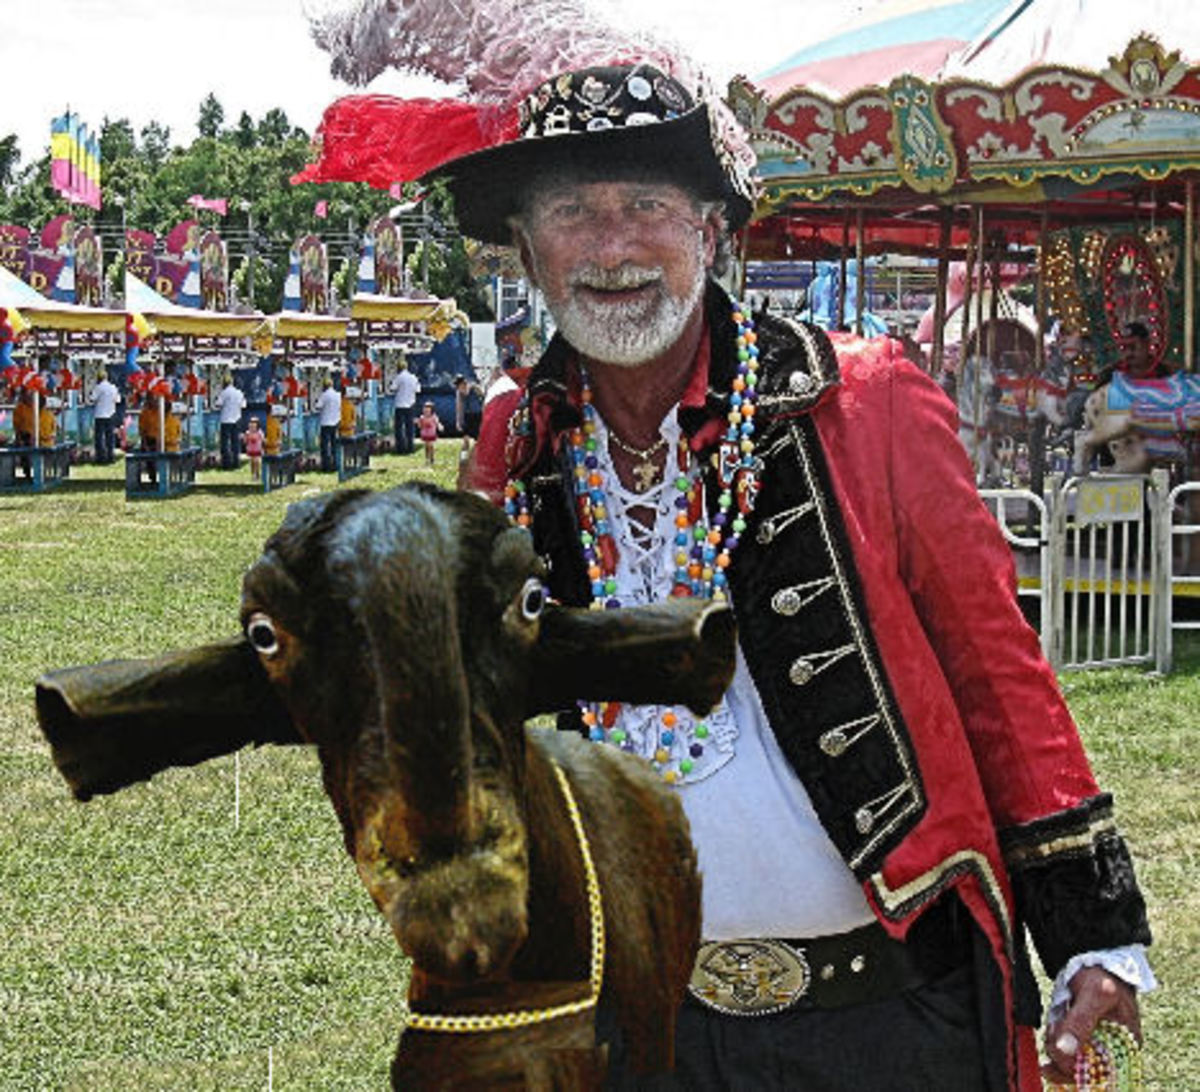 Dr. Harry Beard III Goatology Researcher *see composite image component citations